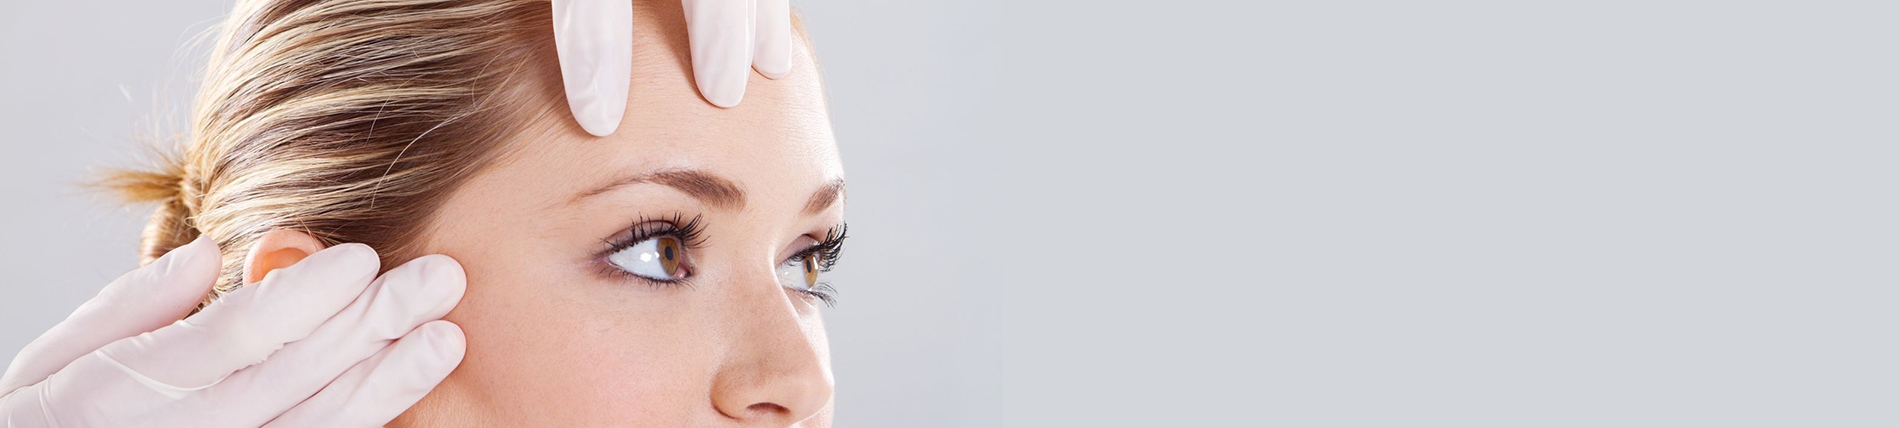 Botox in Fairfax VA